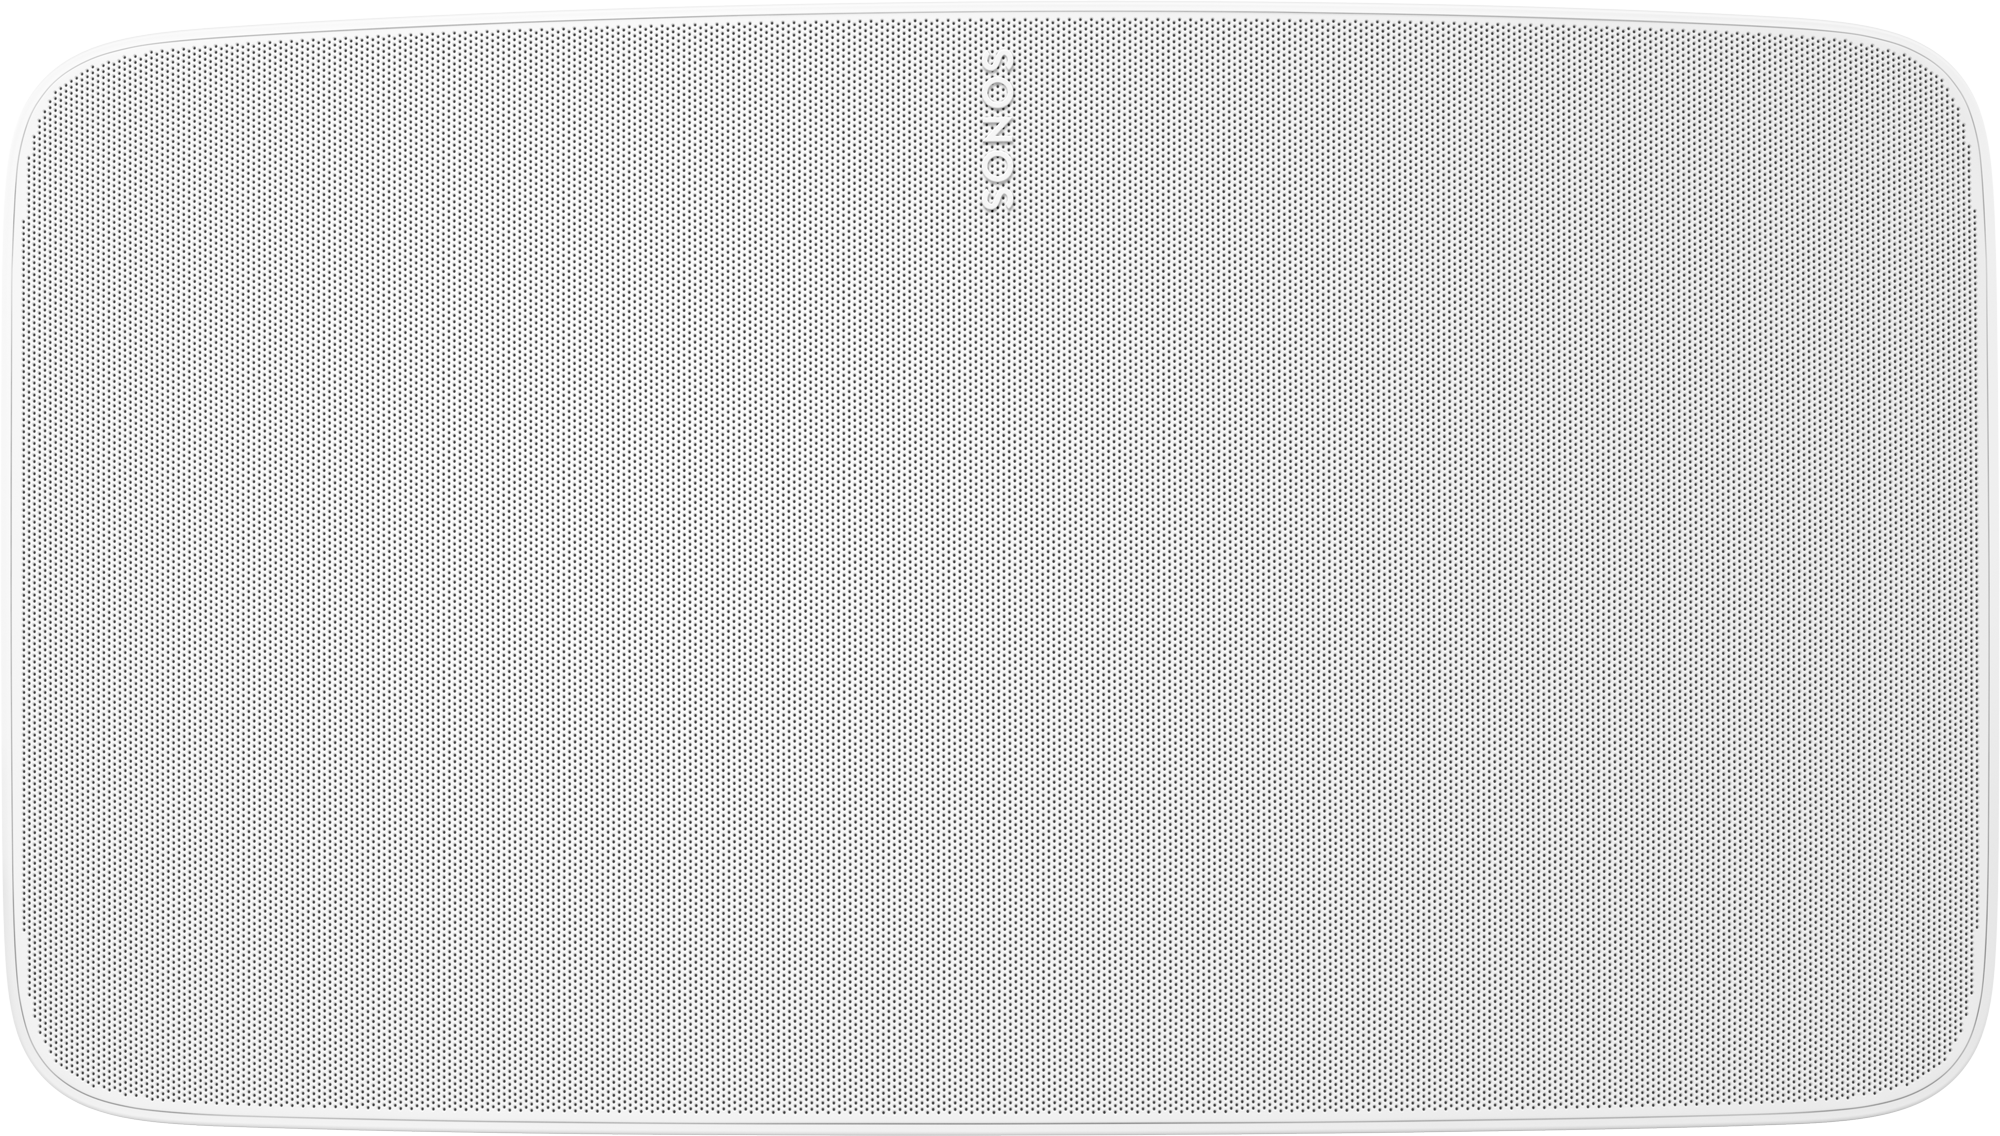 Sonos Play:5 Ultimate Wireless Smart Speaker - White